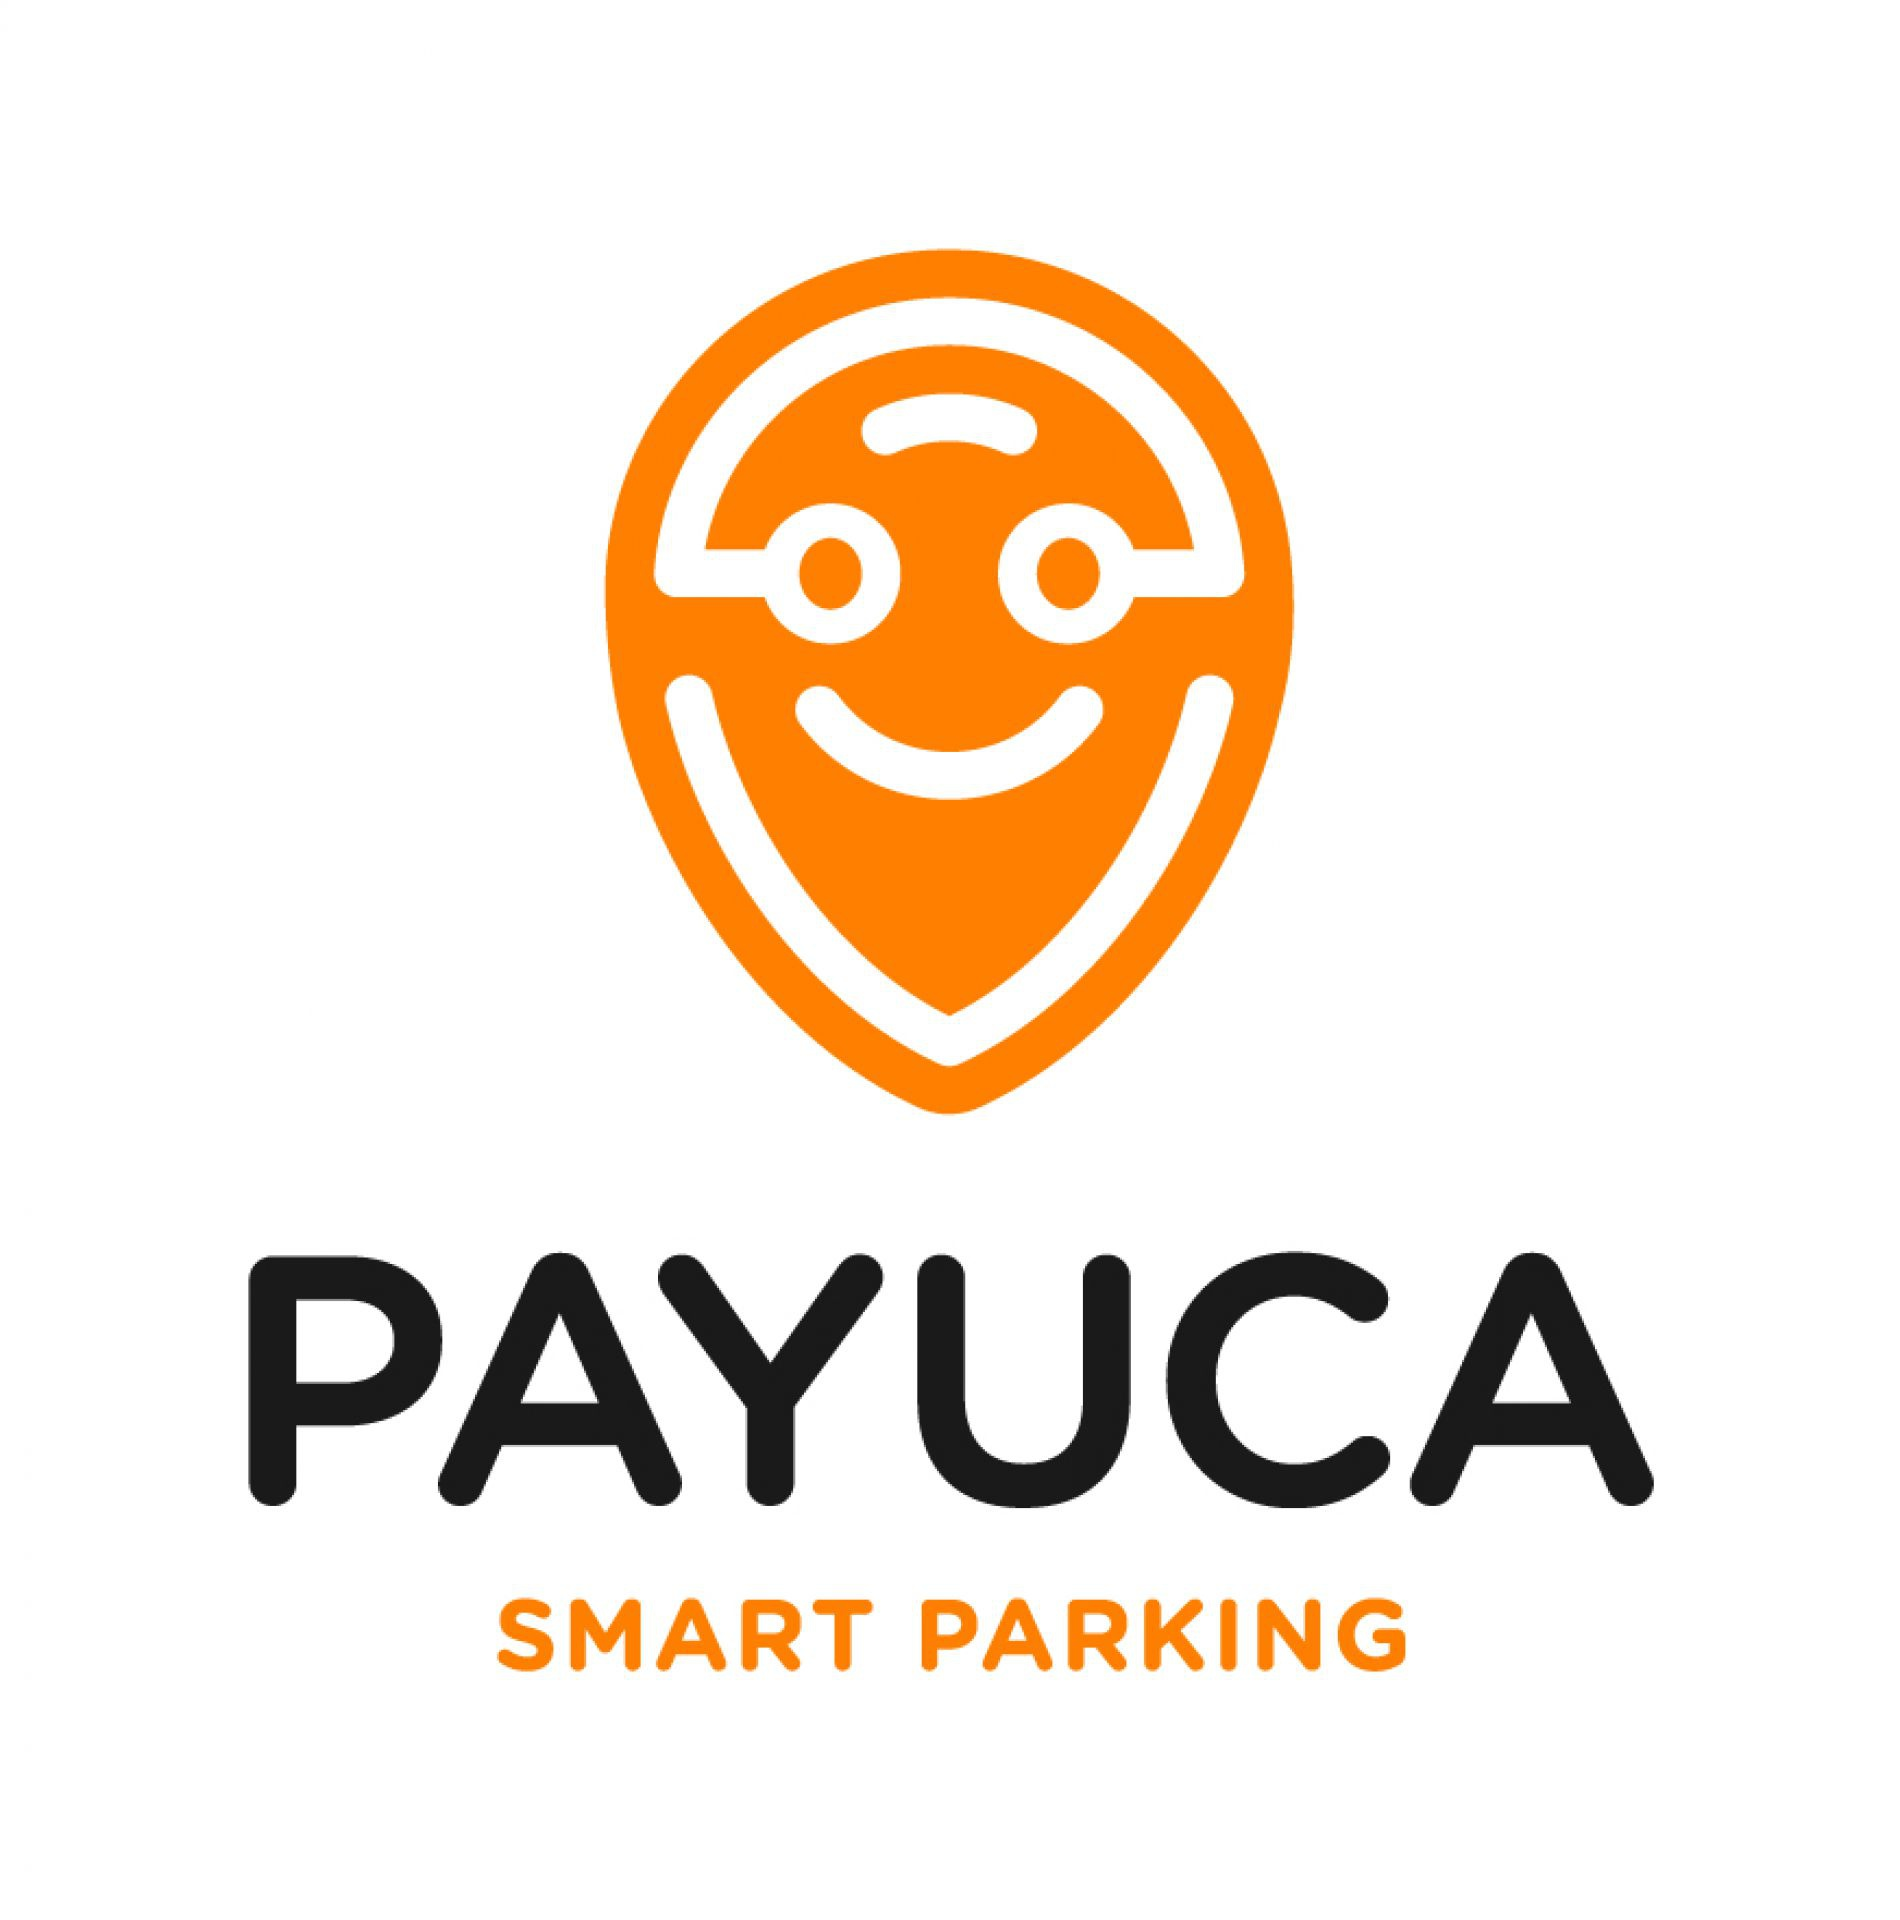 PAYUCA smart parking